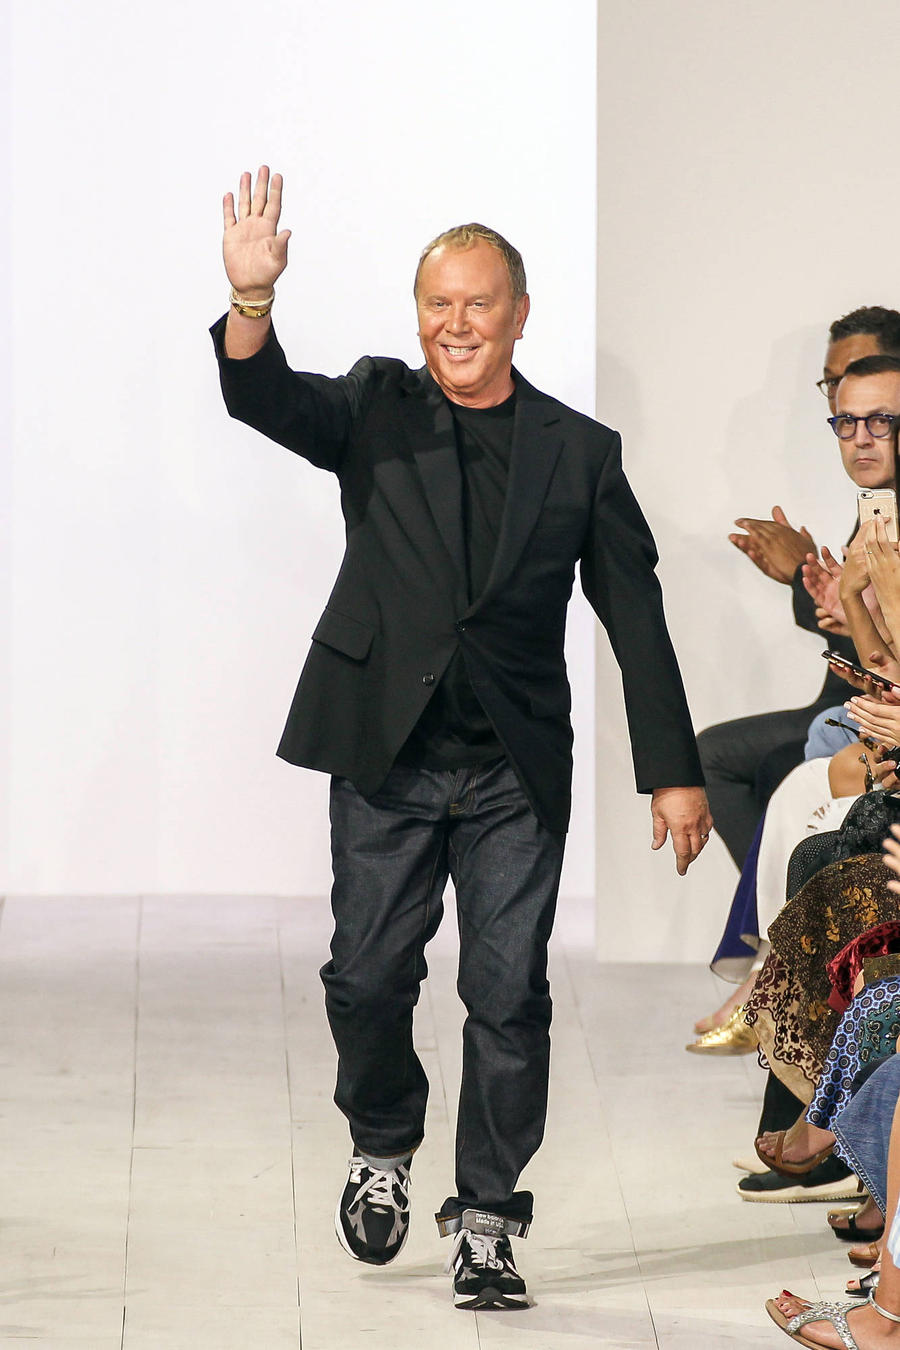 Michael Kors: 'Naomi Campbell Always Carried Milkshakes'